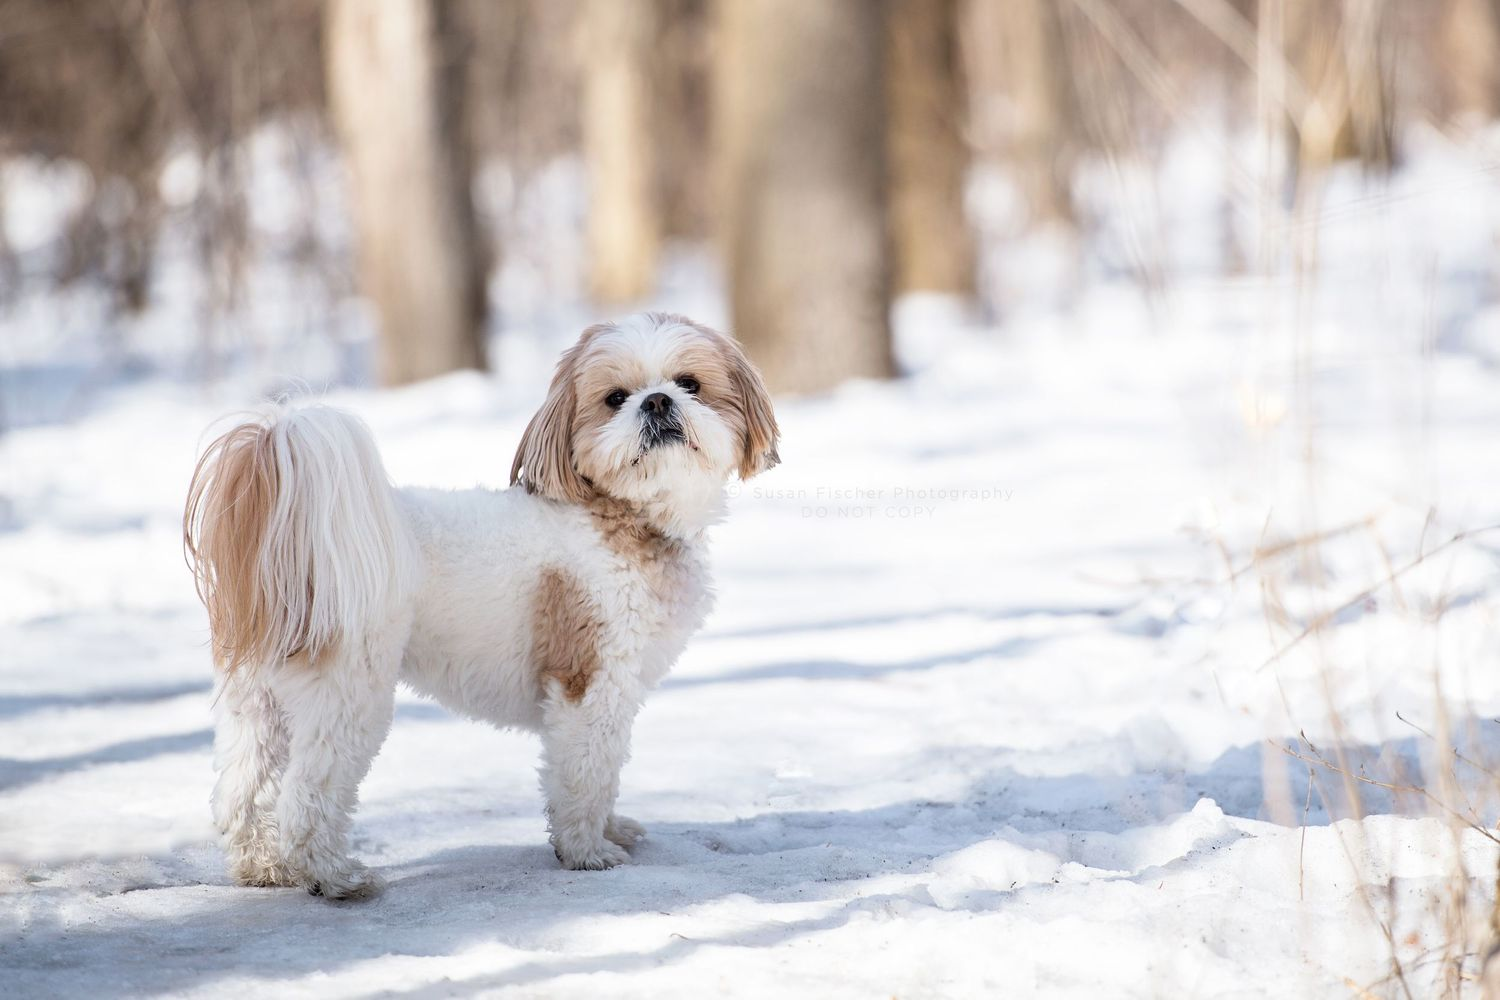 A white and tan Shih Tzu in a snowy forest